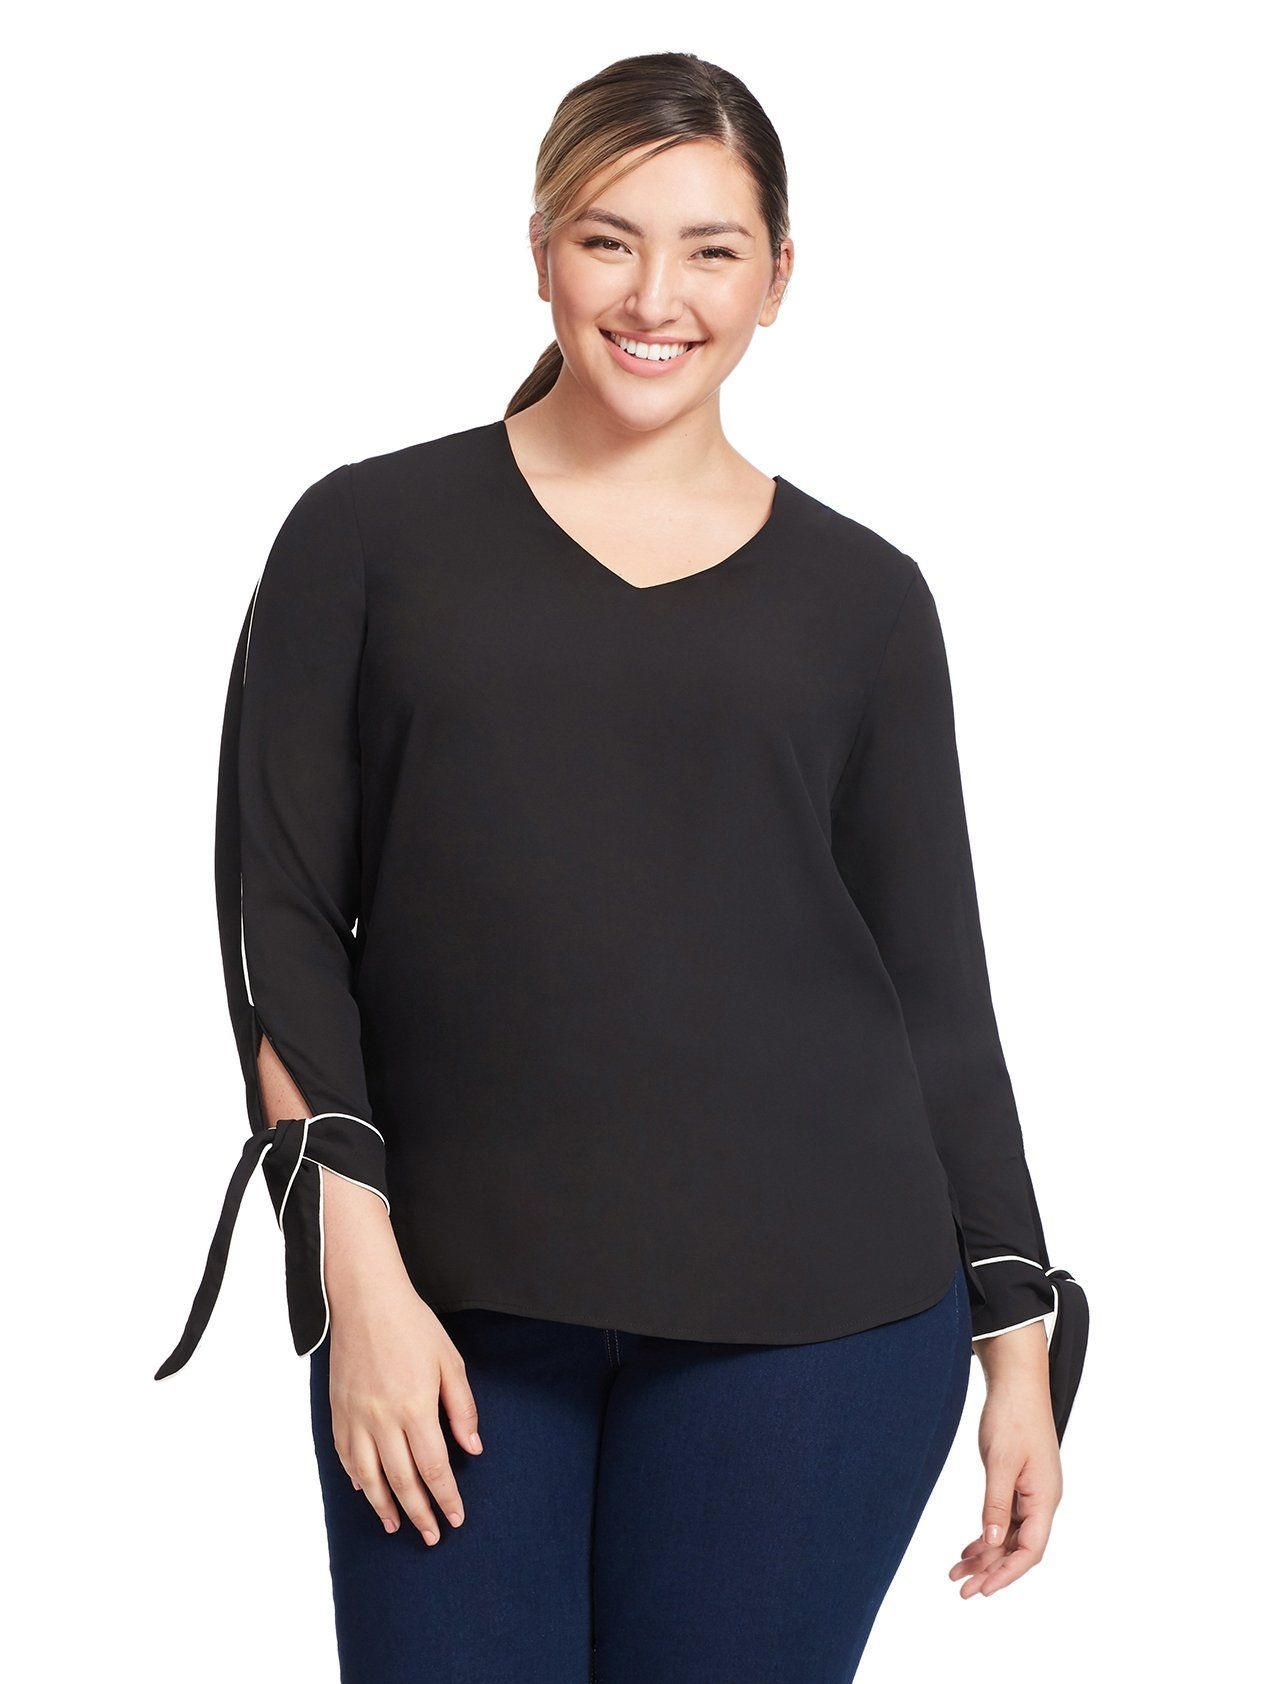 5873deac8990b Piped Tie Cuff Blouse by REBEL WILSON x ANGELS